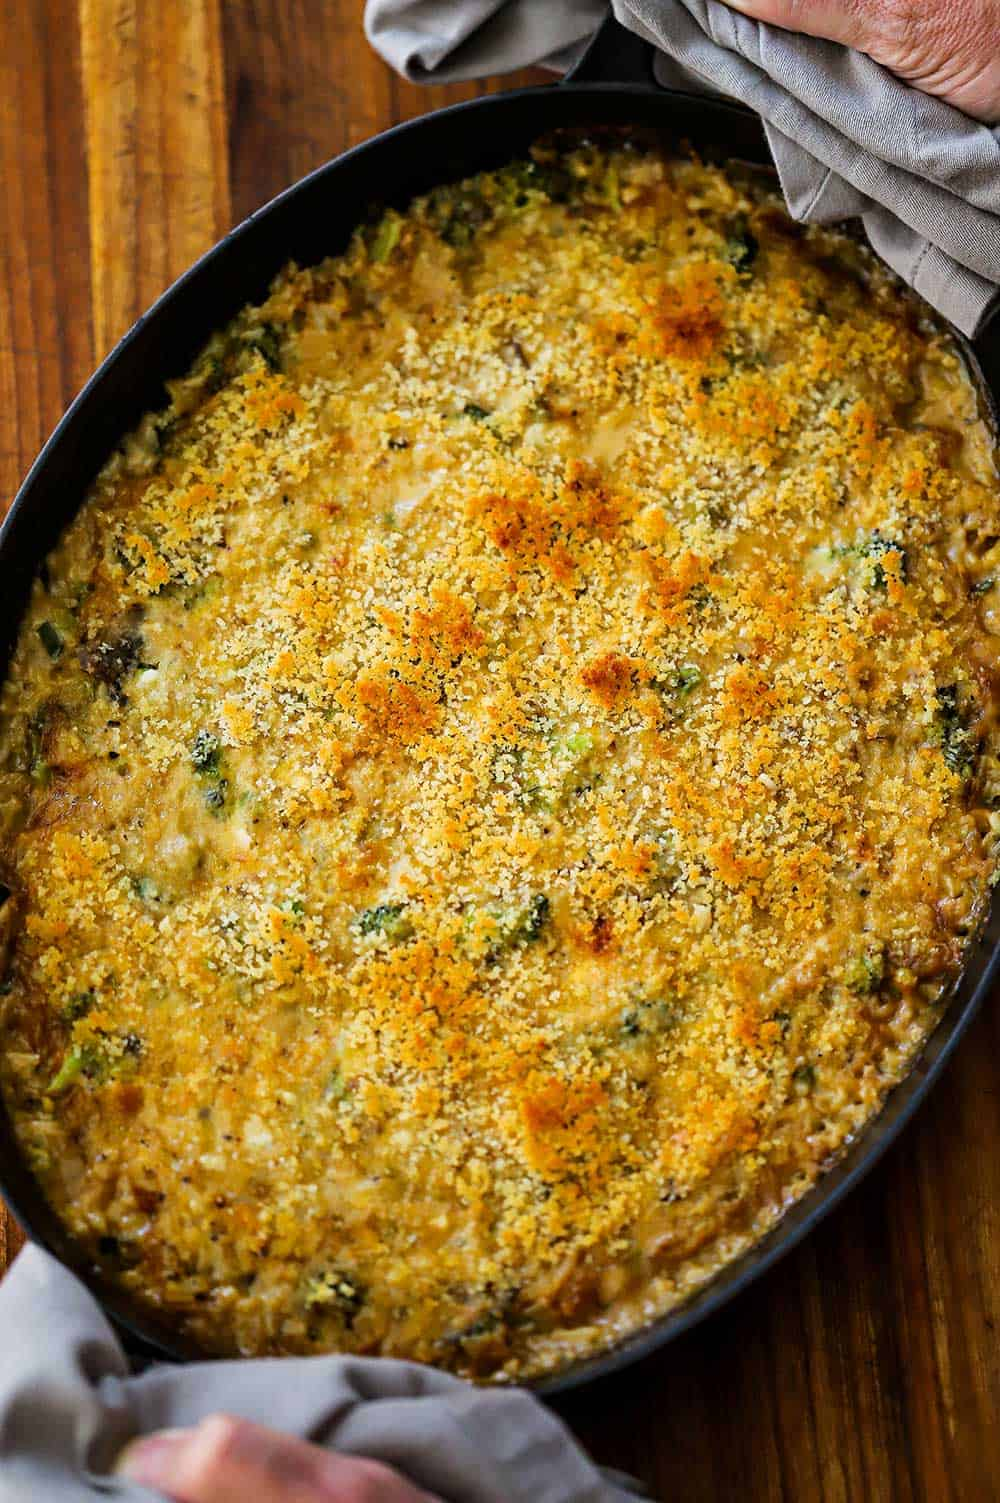 A large oval baking dish filled with broccoli casserole with cheddar and rice fresh out of the oven.